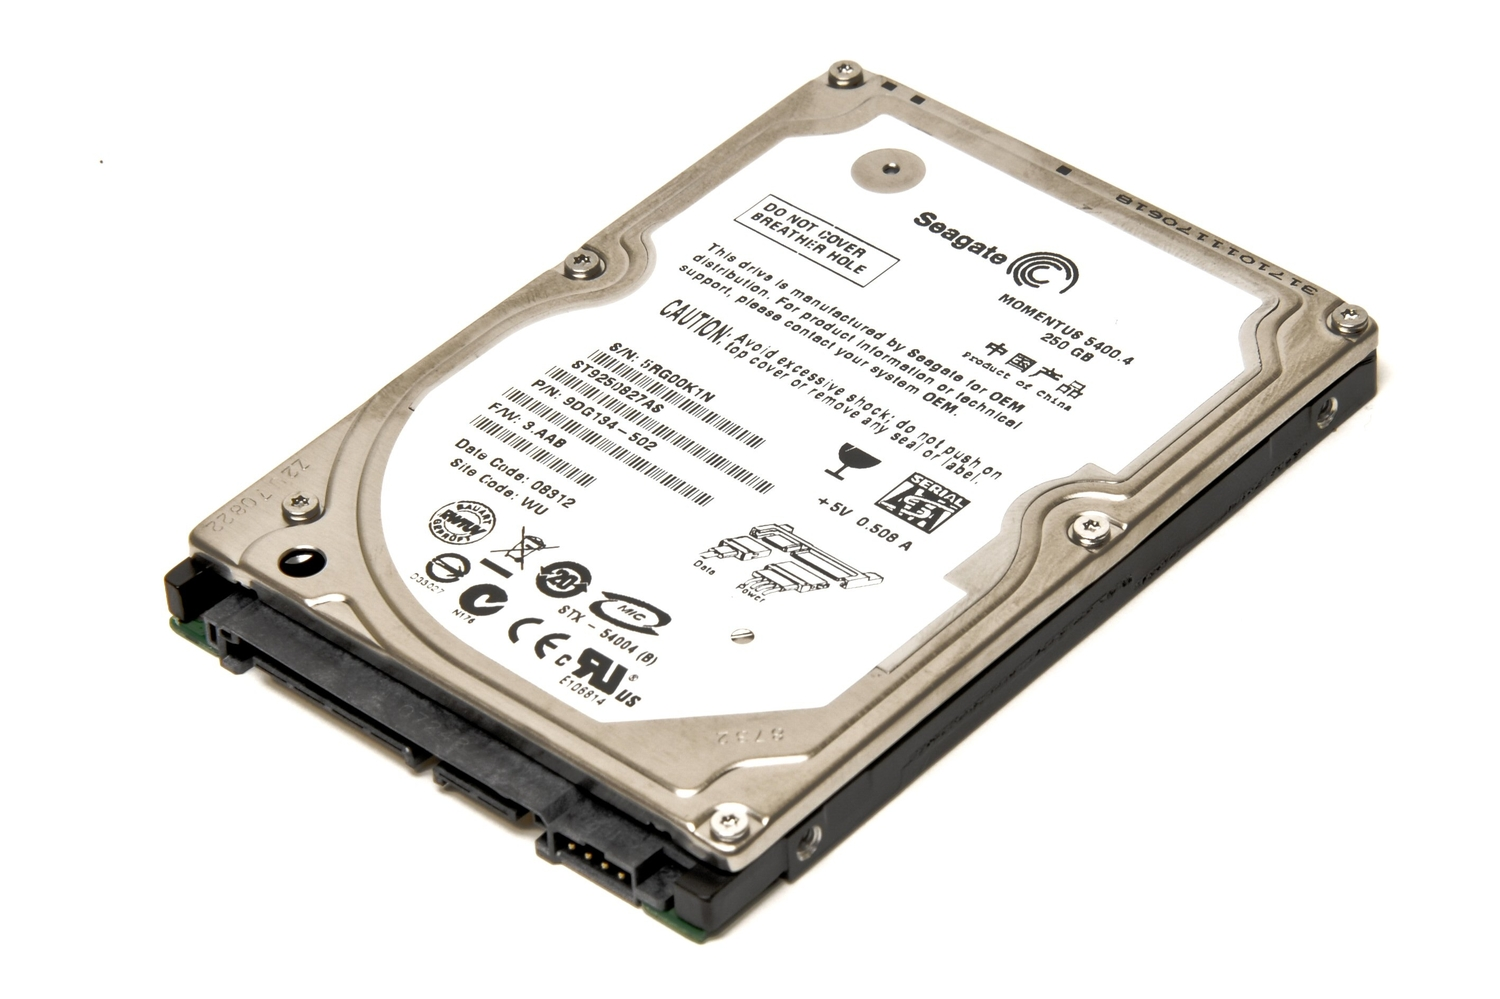 Seagate Momentus 54004 250GB ST9250827AS Specifications